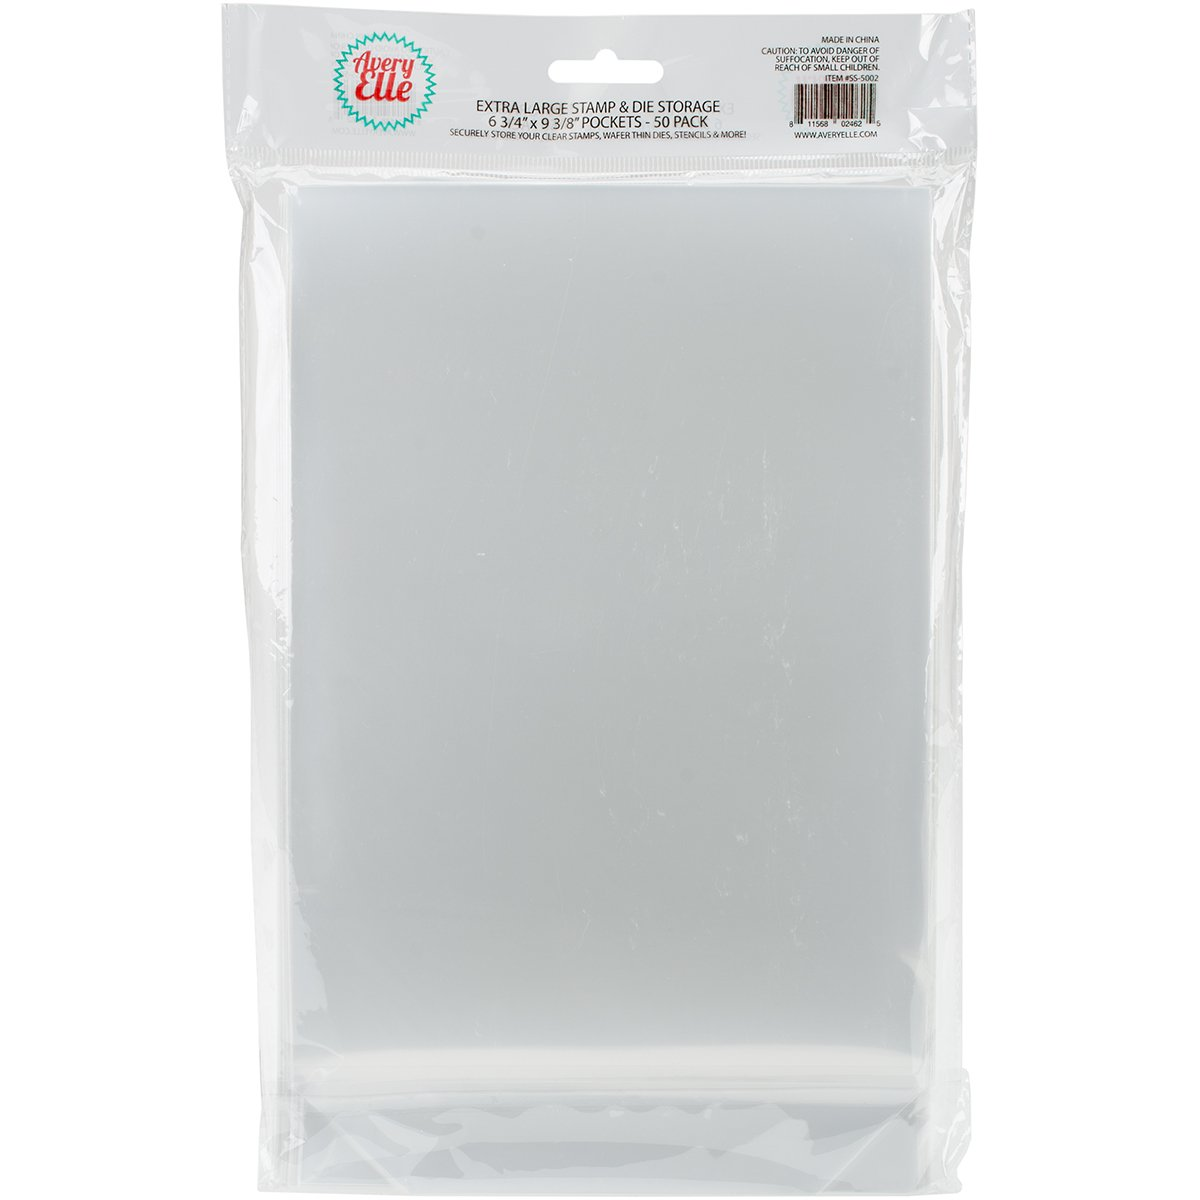 Avery Elle Stamp and Die Storage Pockets, Multi-Colour, 16.51 x 15.87 x 1.9 cm SS-5003